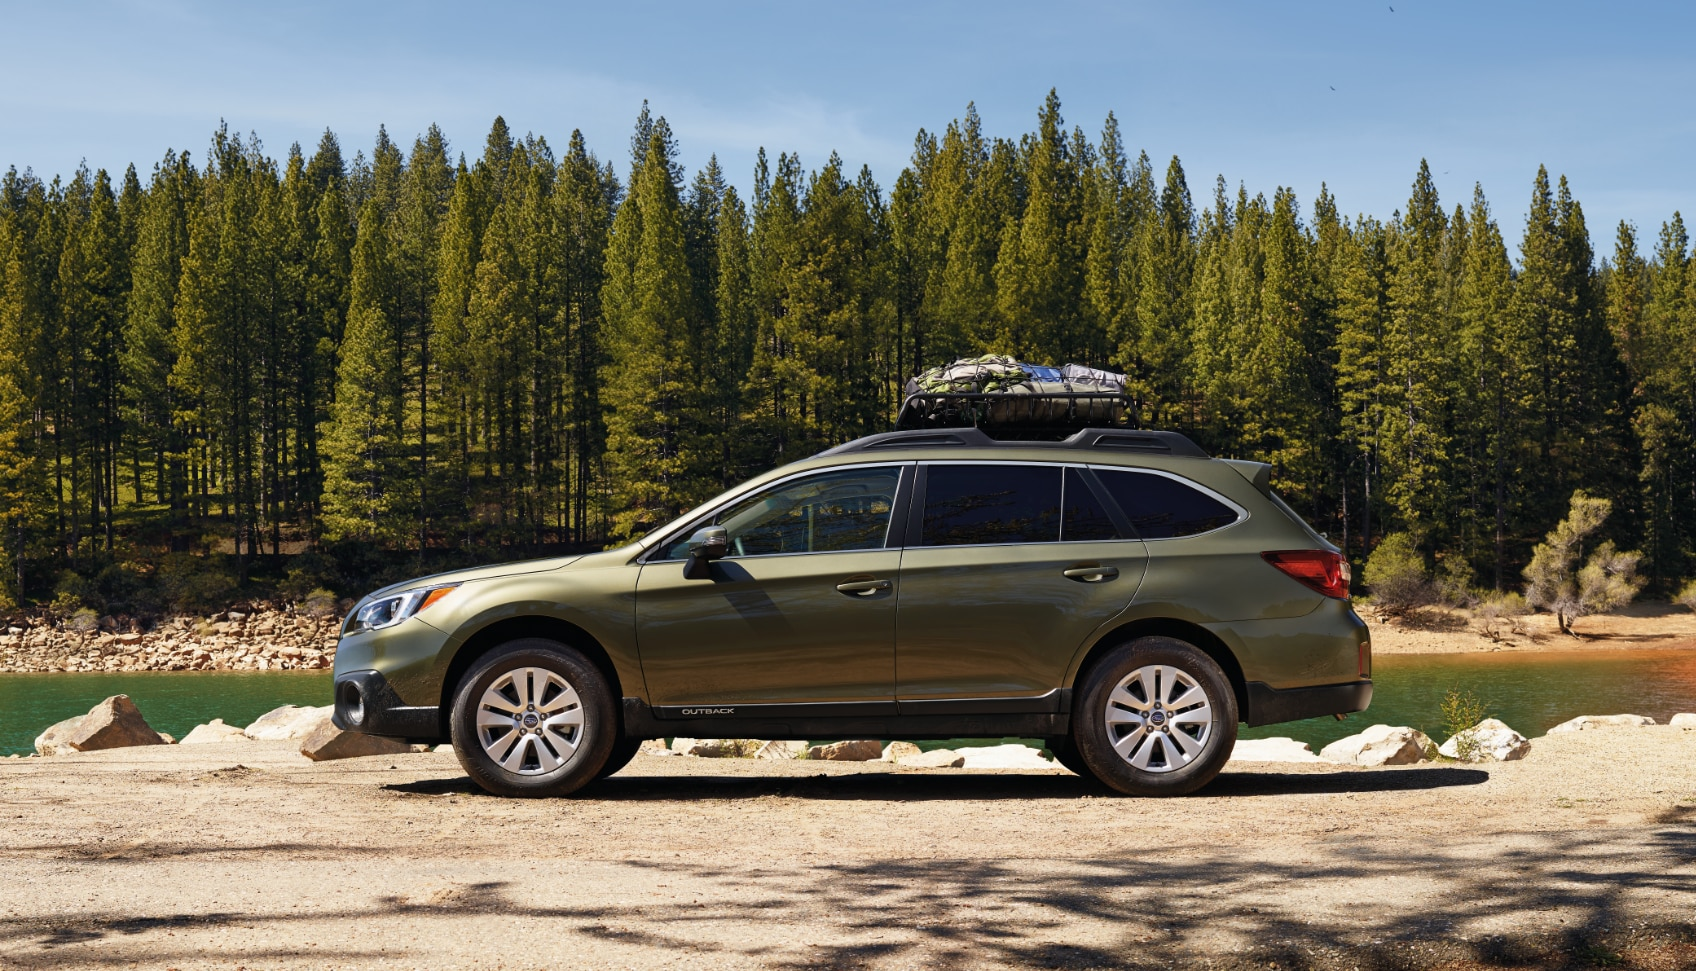 Subaru Outback for sale in Bloomington, IN